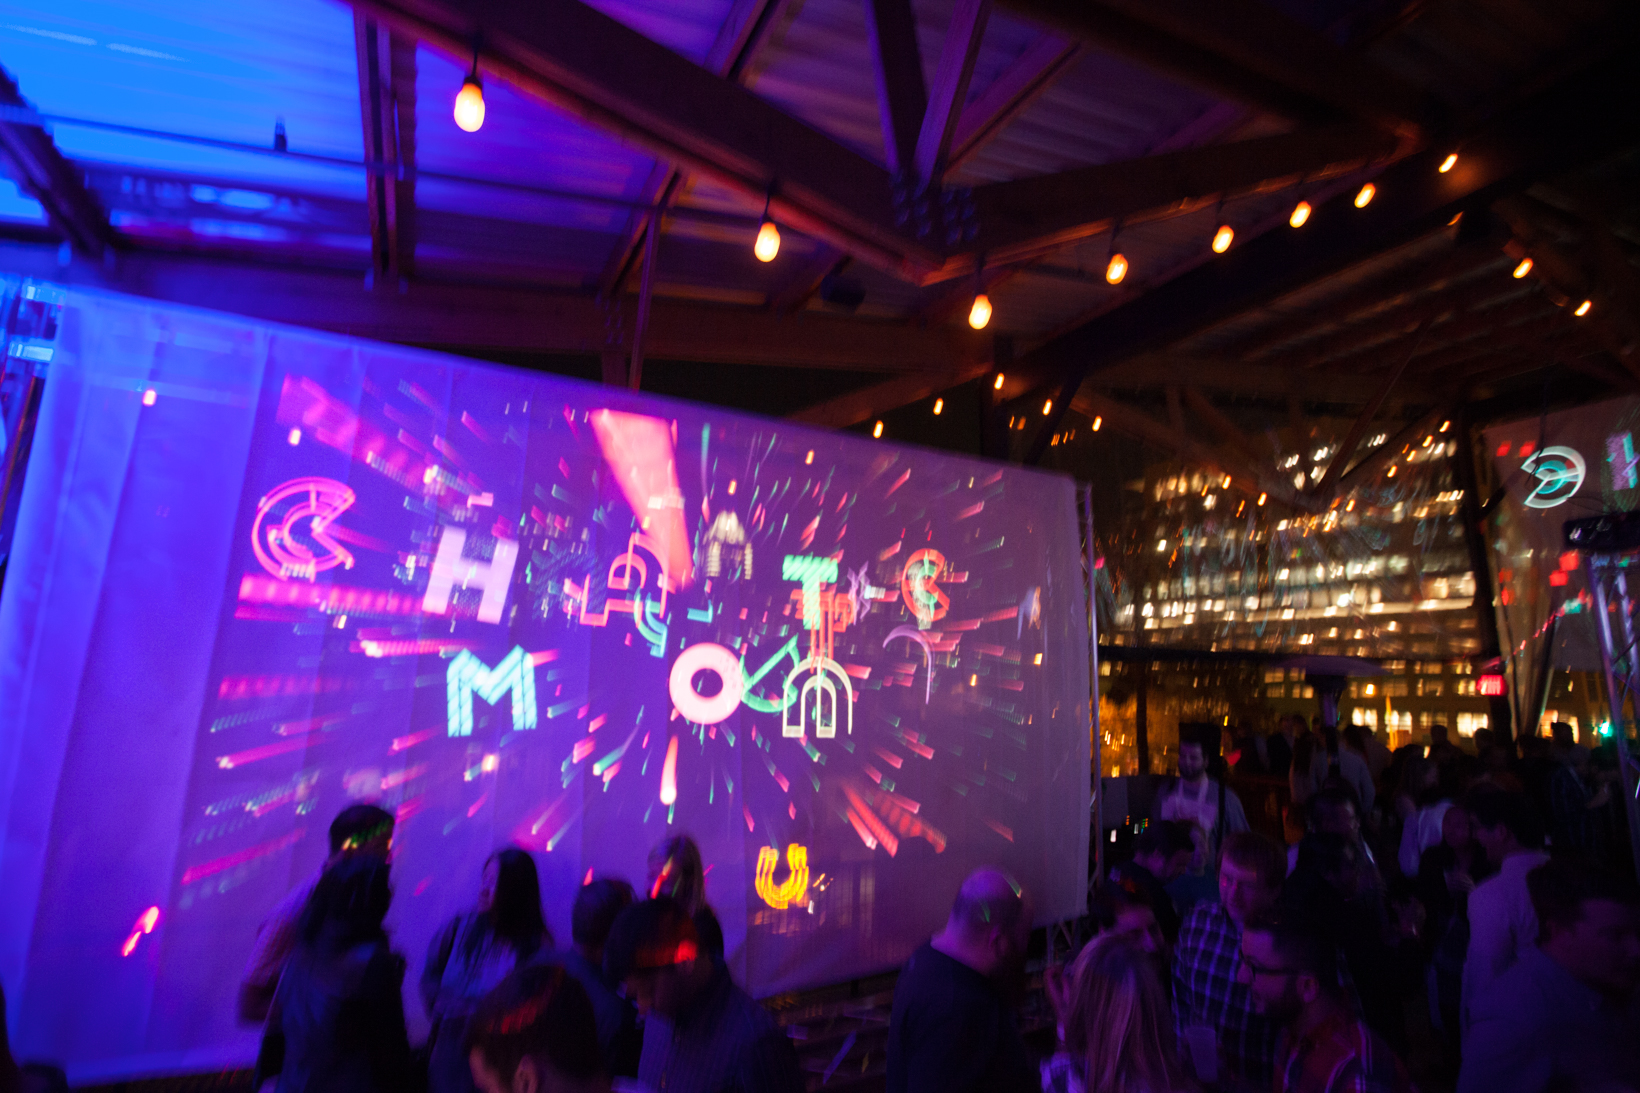 SXSW 2015 Chaotic Moon Party